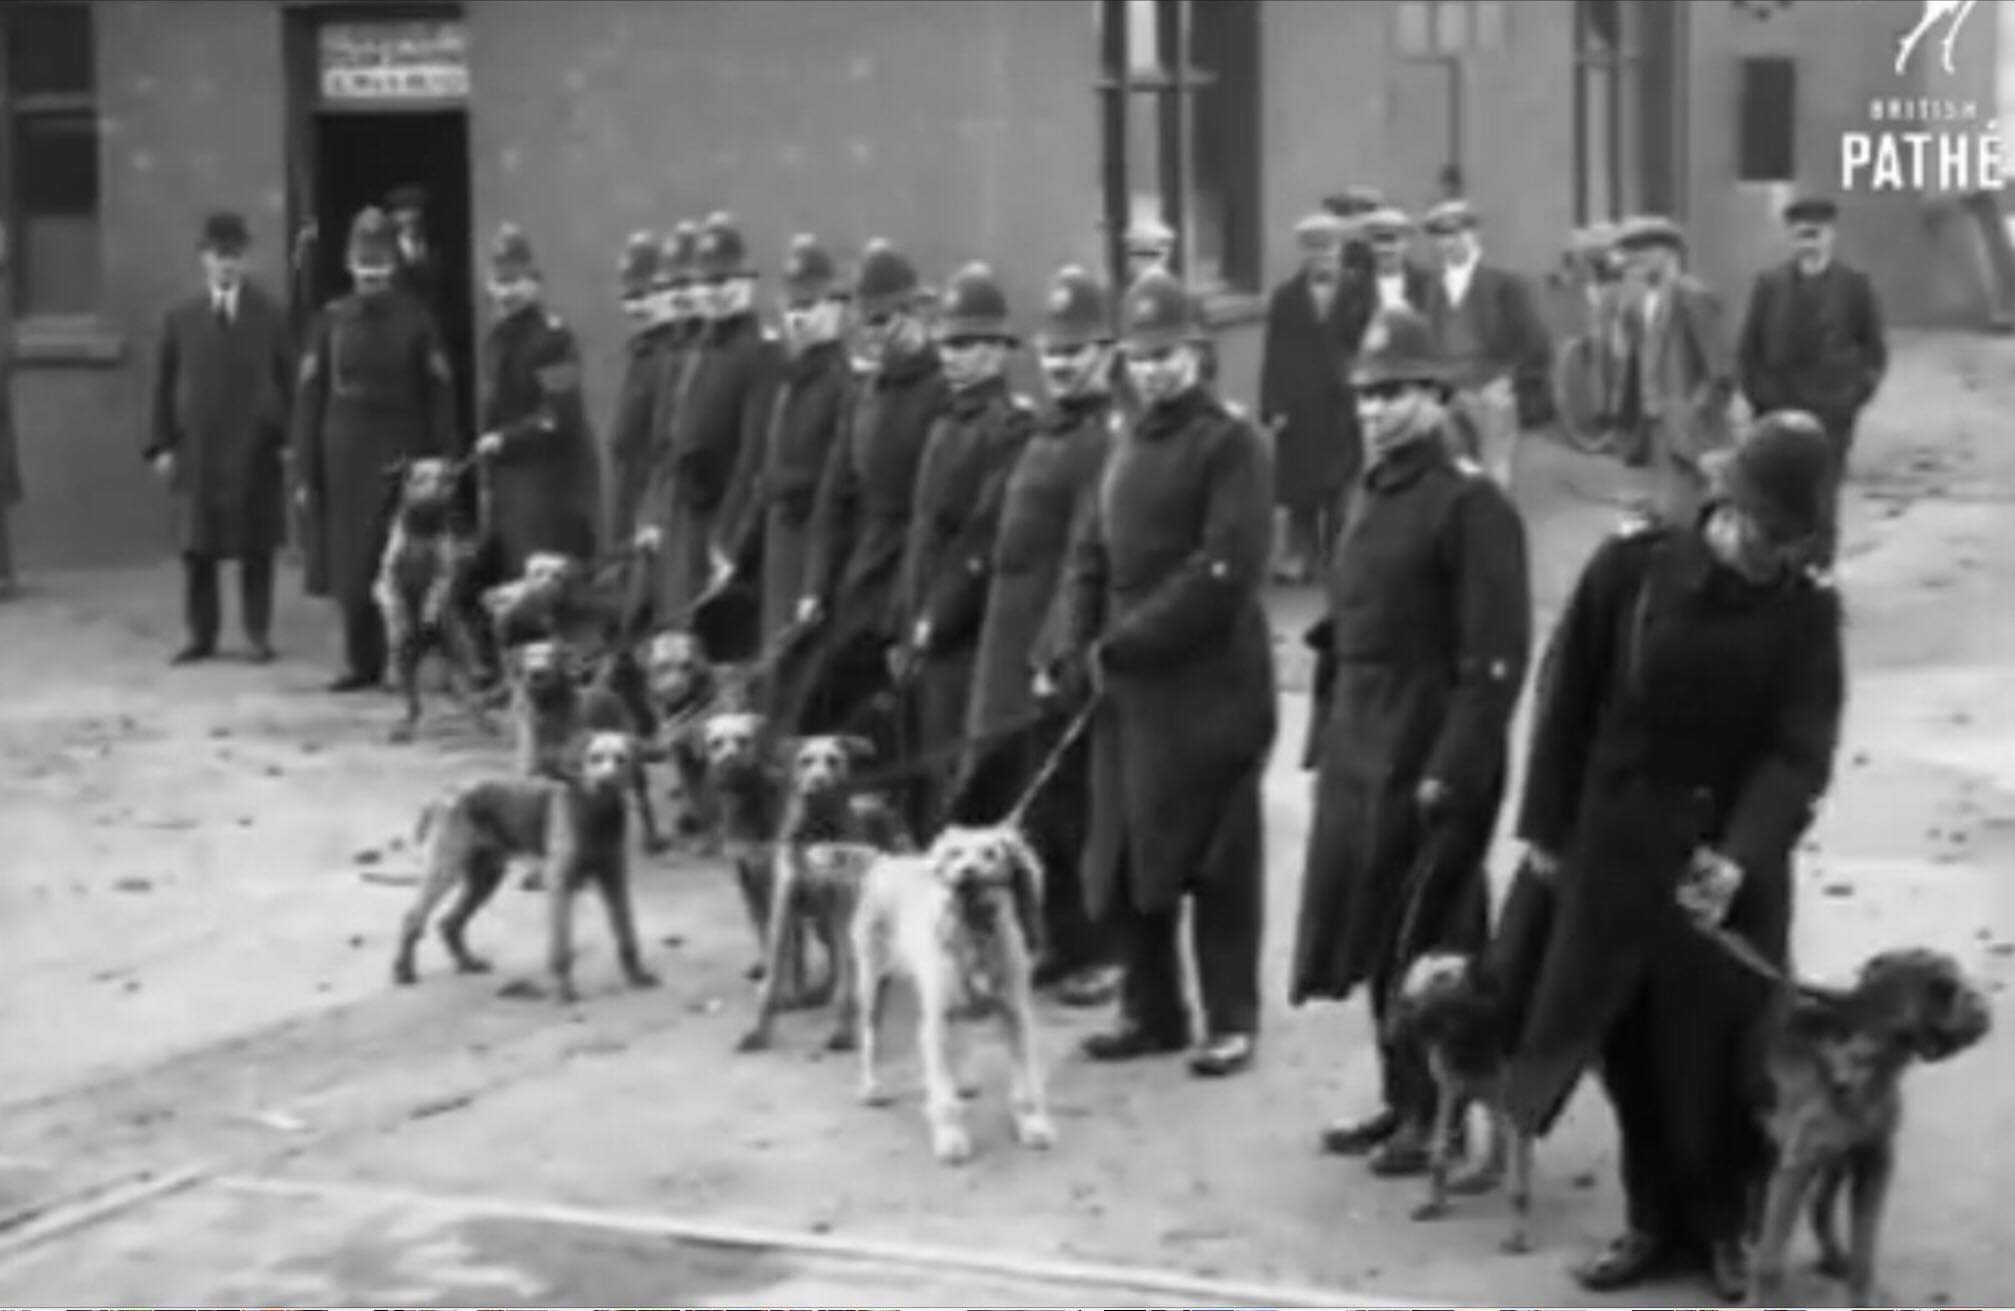 1960's-1970's: Football Crowds - 1960's/70's BTP dogs were in regular use as part of policing football crowds/disorder.